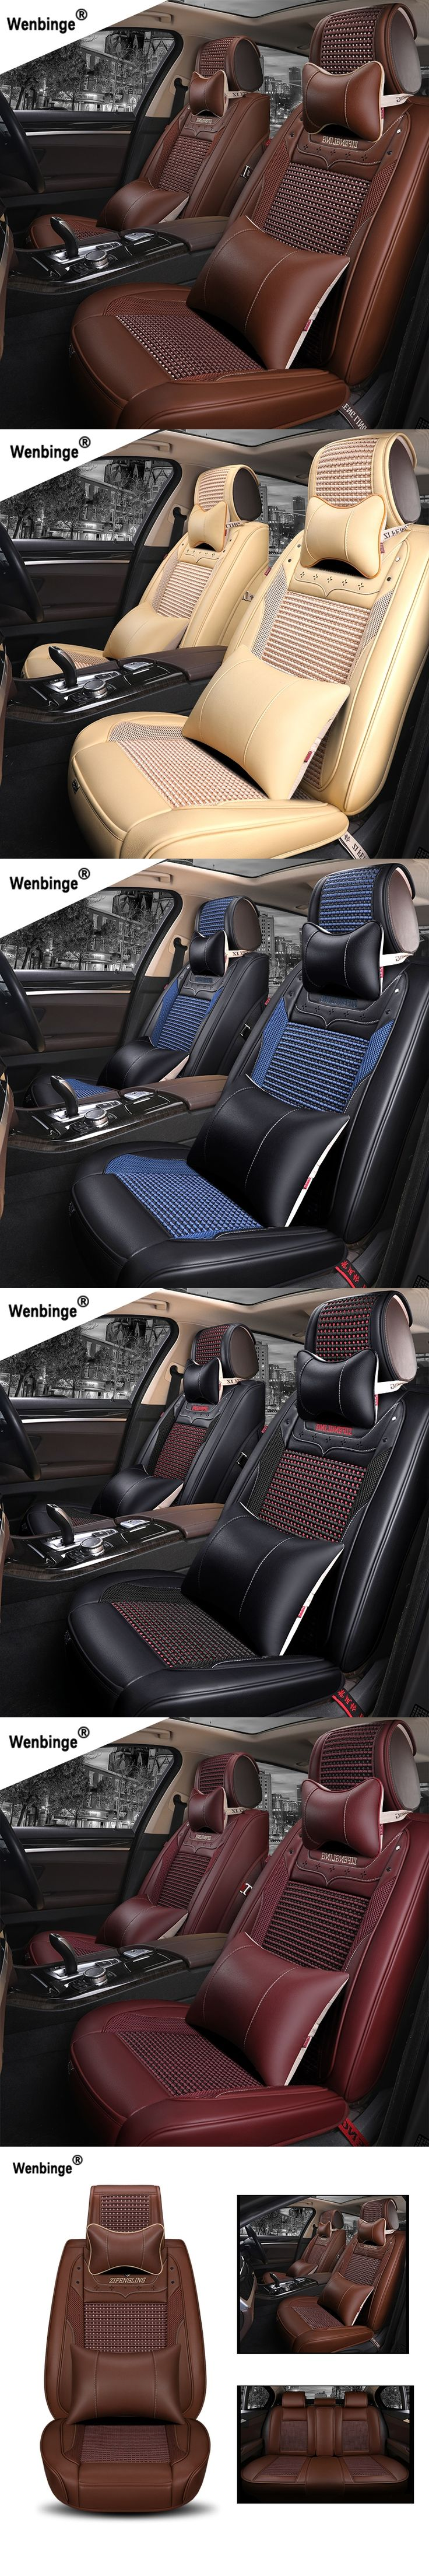 Wenbinge Special Leather Car Seat Covers For Toyota Corolla Camry Rav4 Auris Prius Yalis